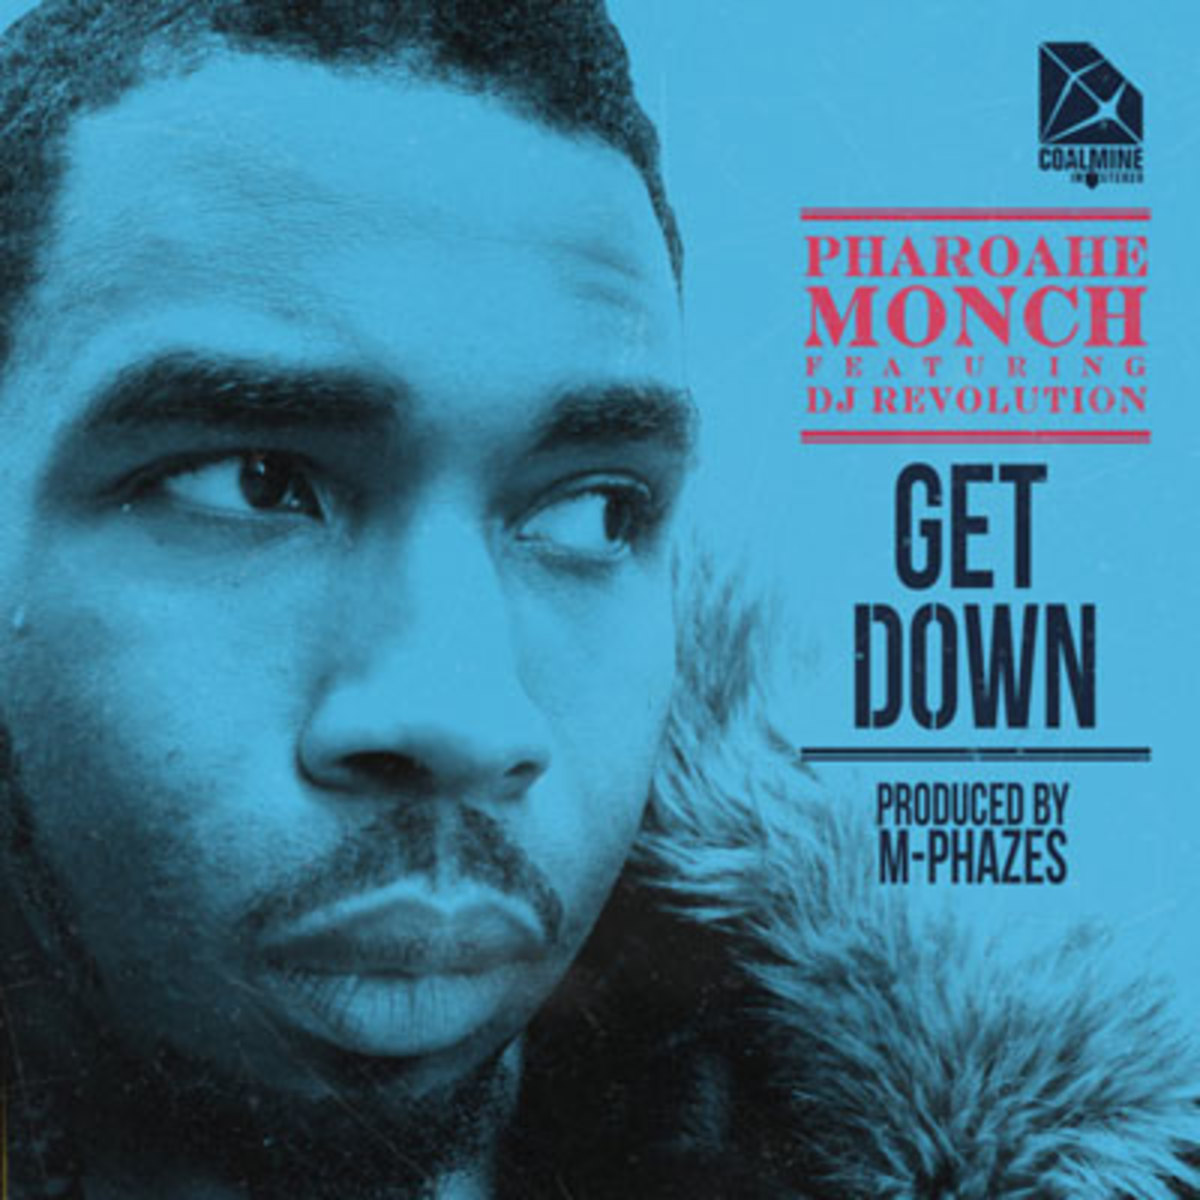 pharoahemonch-getdown.jpg